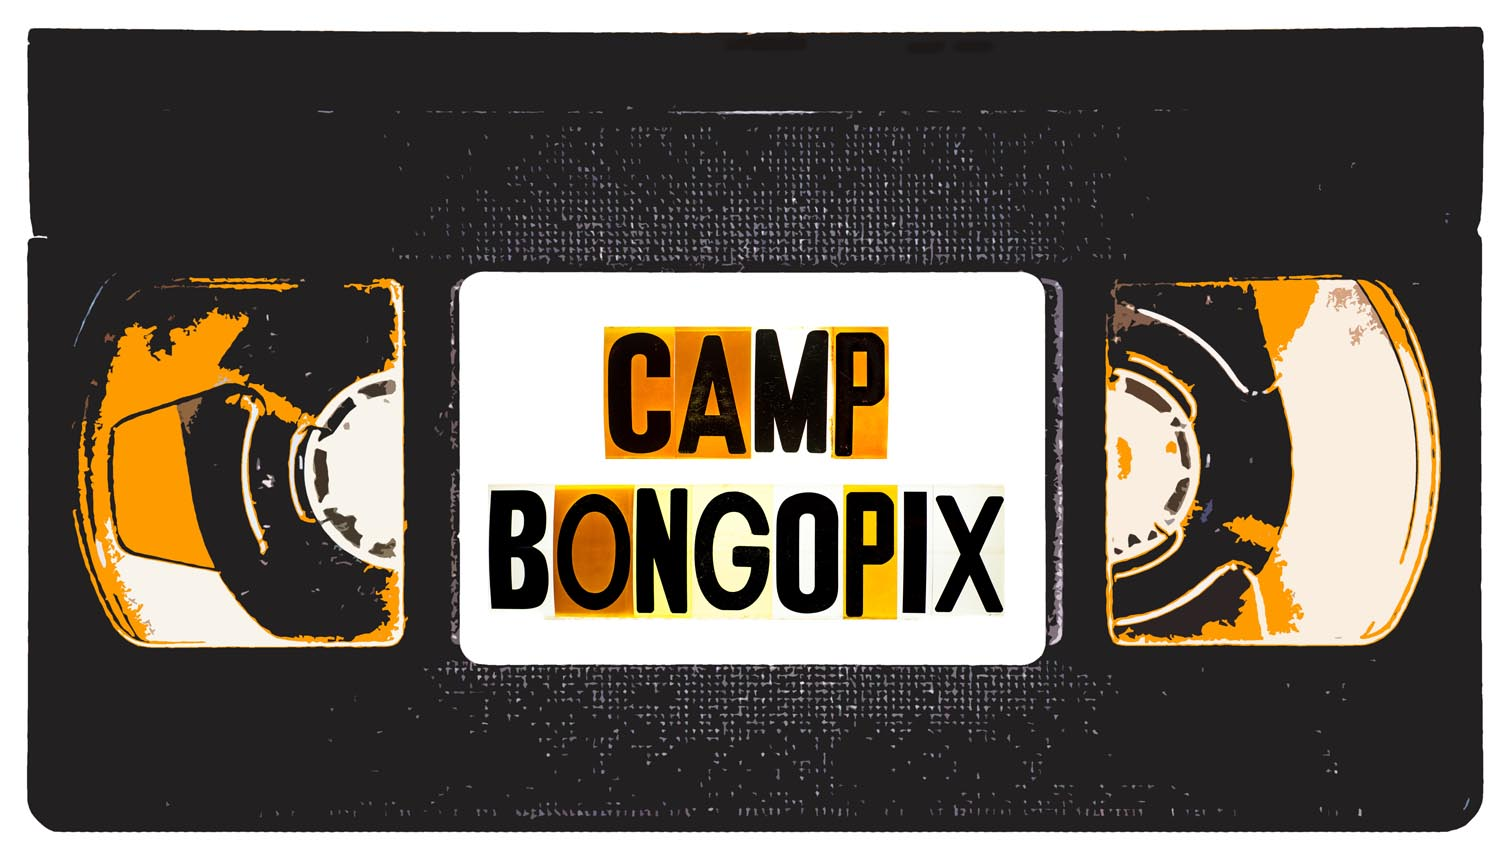 Camp Bongopix